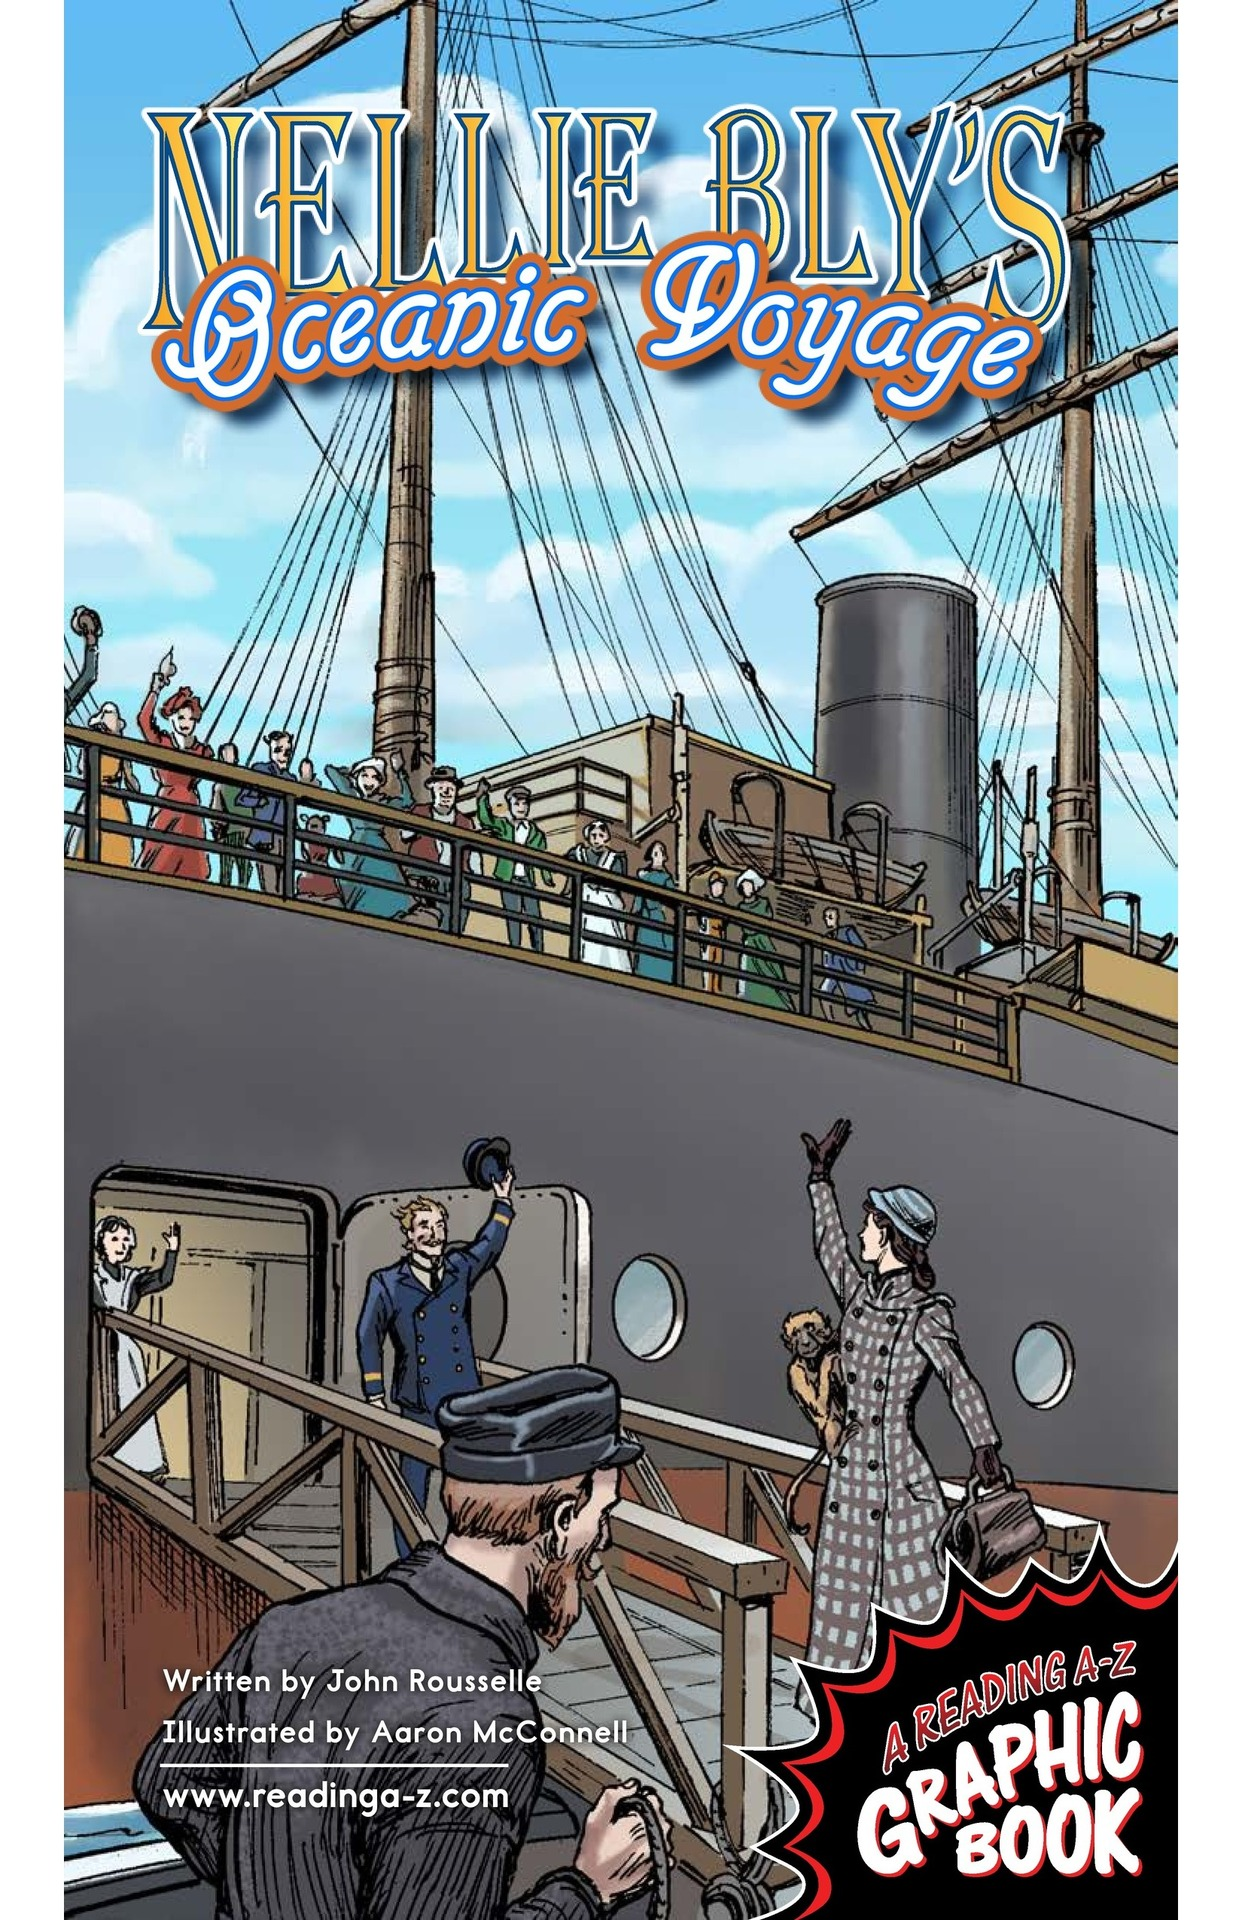 Book Preview For Nellie Bly's Oceanic Voyage Page 1